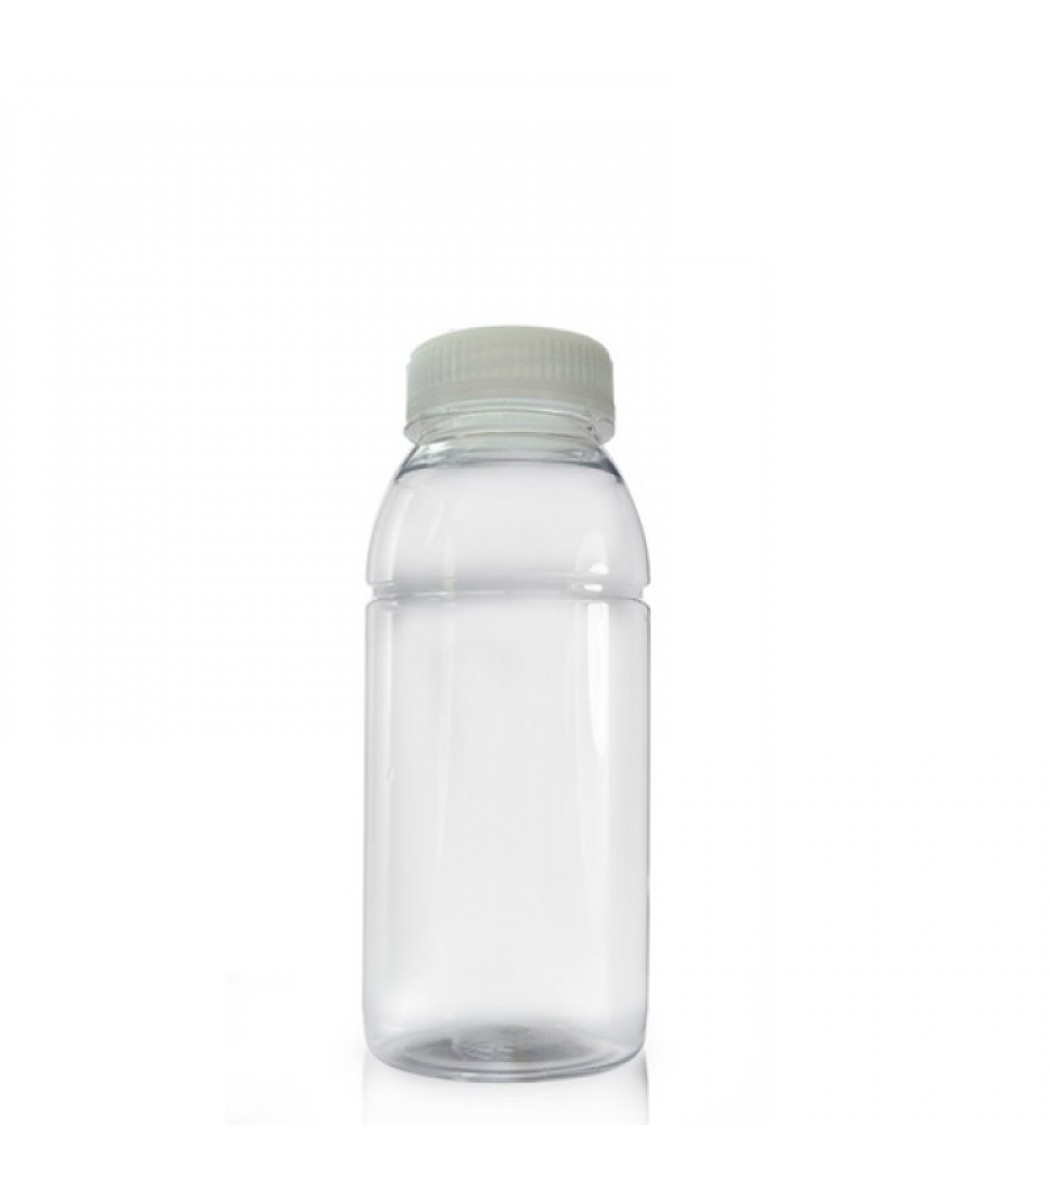 plastic bottles Find great deals on ebay for plastic bottles shop with confidence.